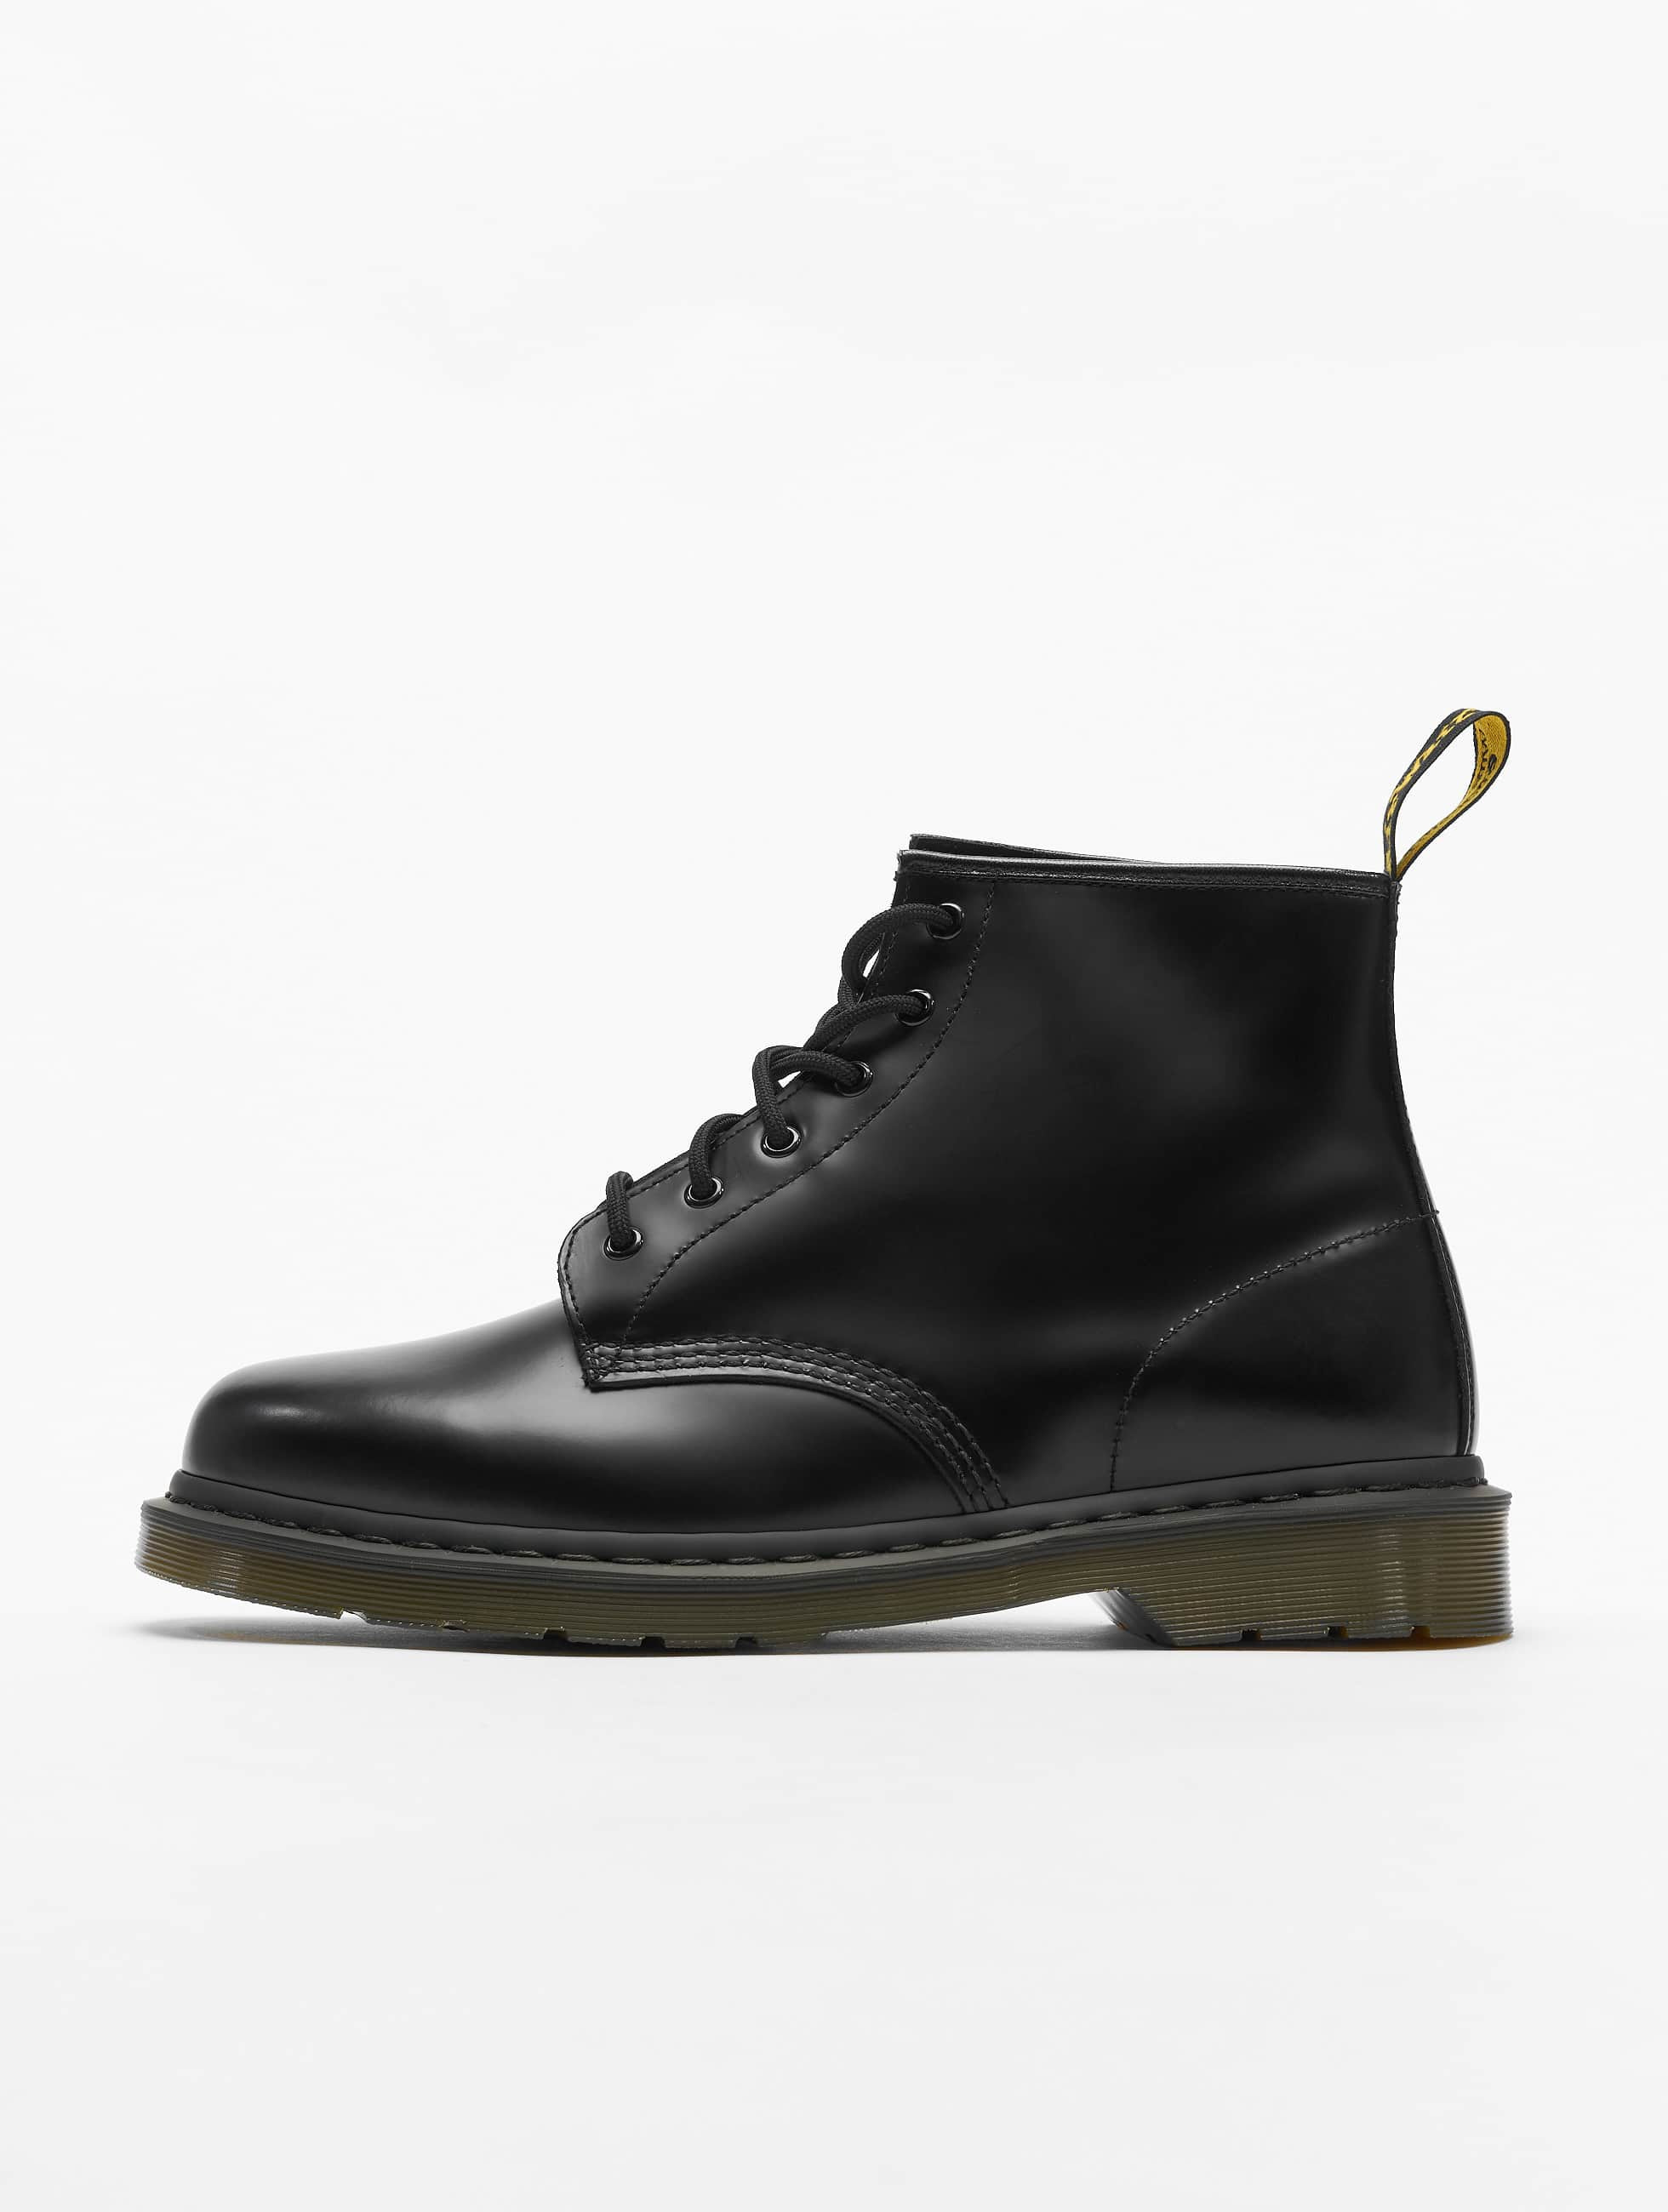 Police 6 DrMartens Pw Boots Leather Black 101 Smooth Eye dxWreECoQB